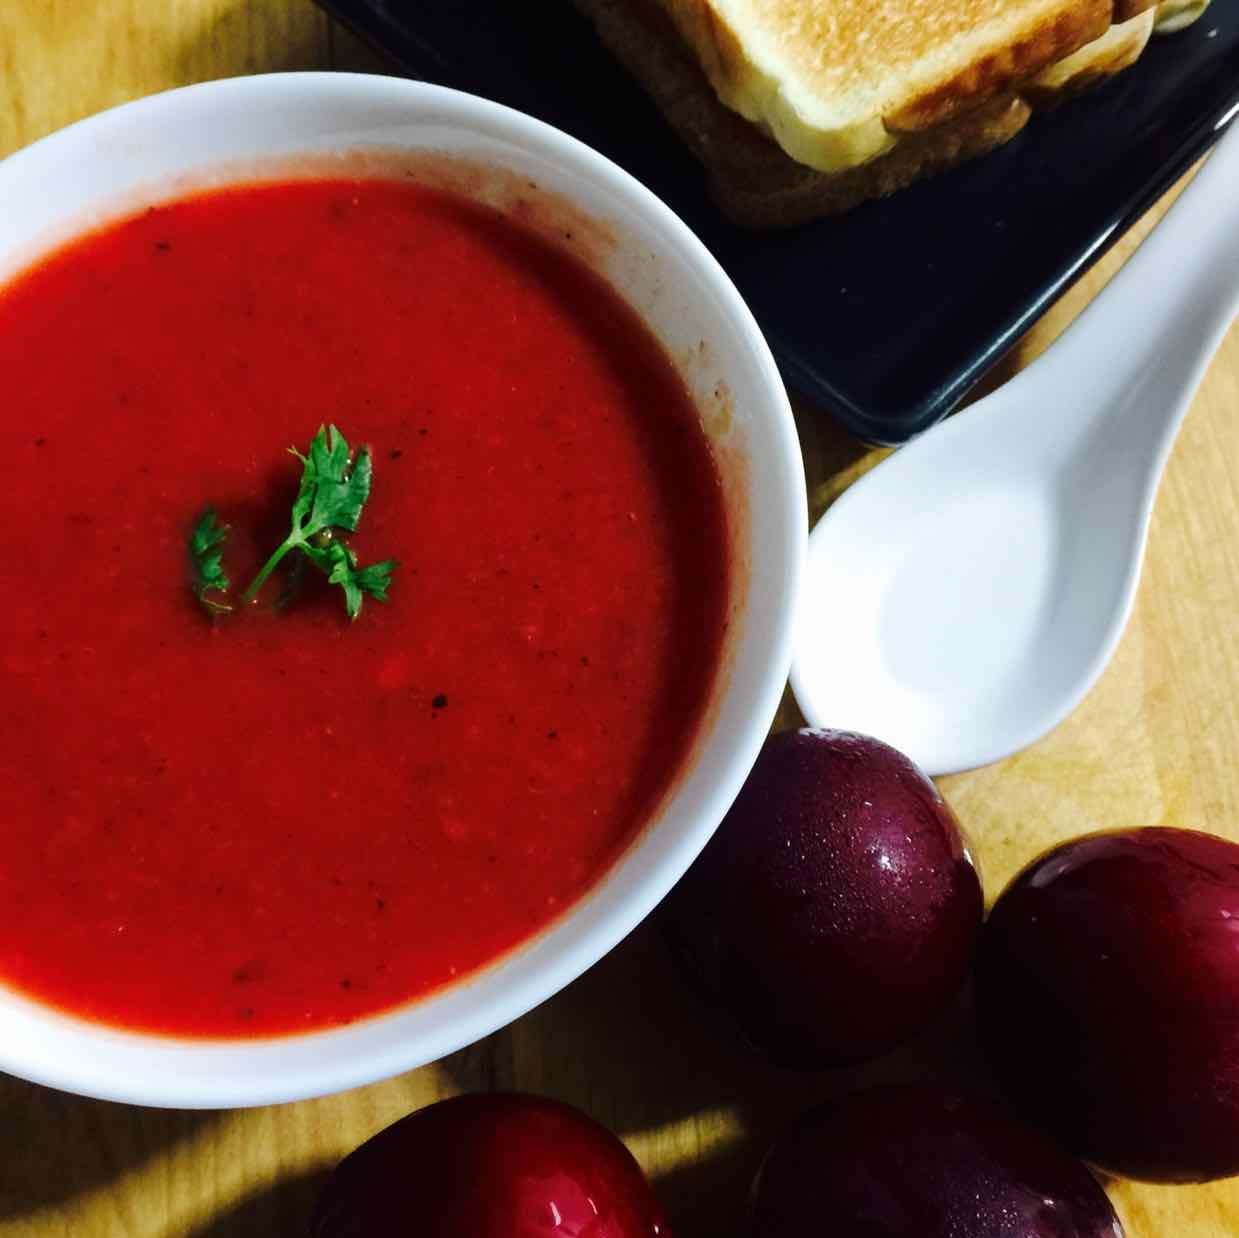 How to make Plum and Tomato Soup